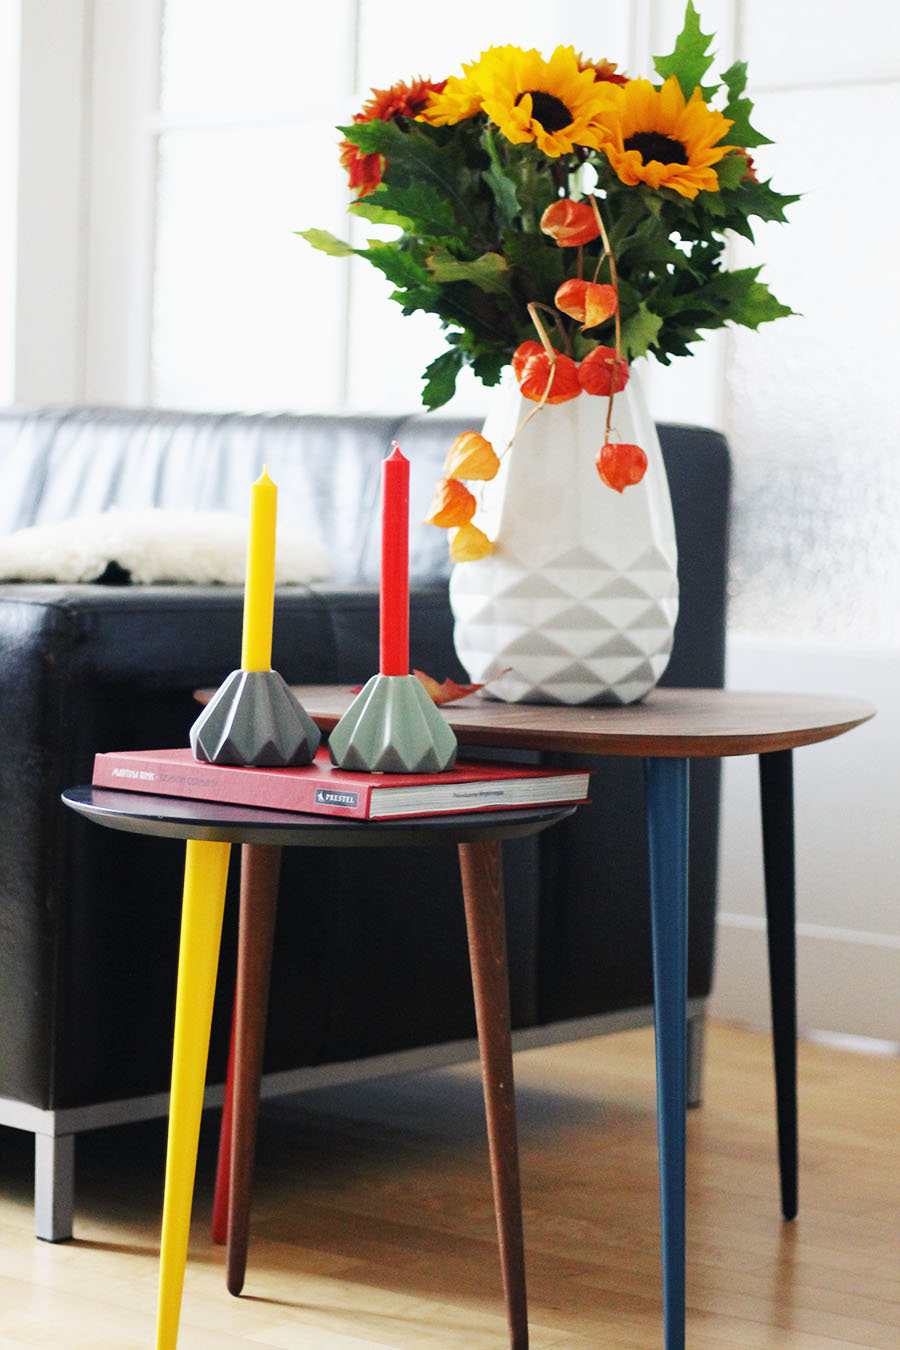 nicetohavemag-interiordesign-sonnenblumen-germandesign-herbstdeko-boconcept-mycs-coffeetable